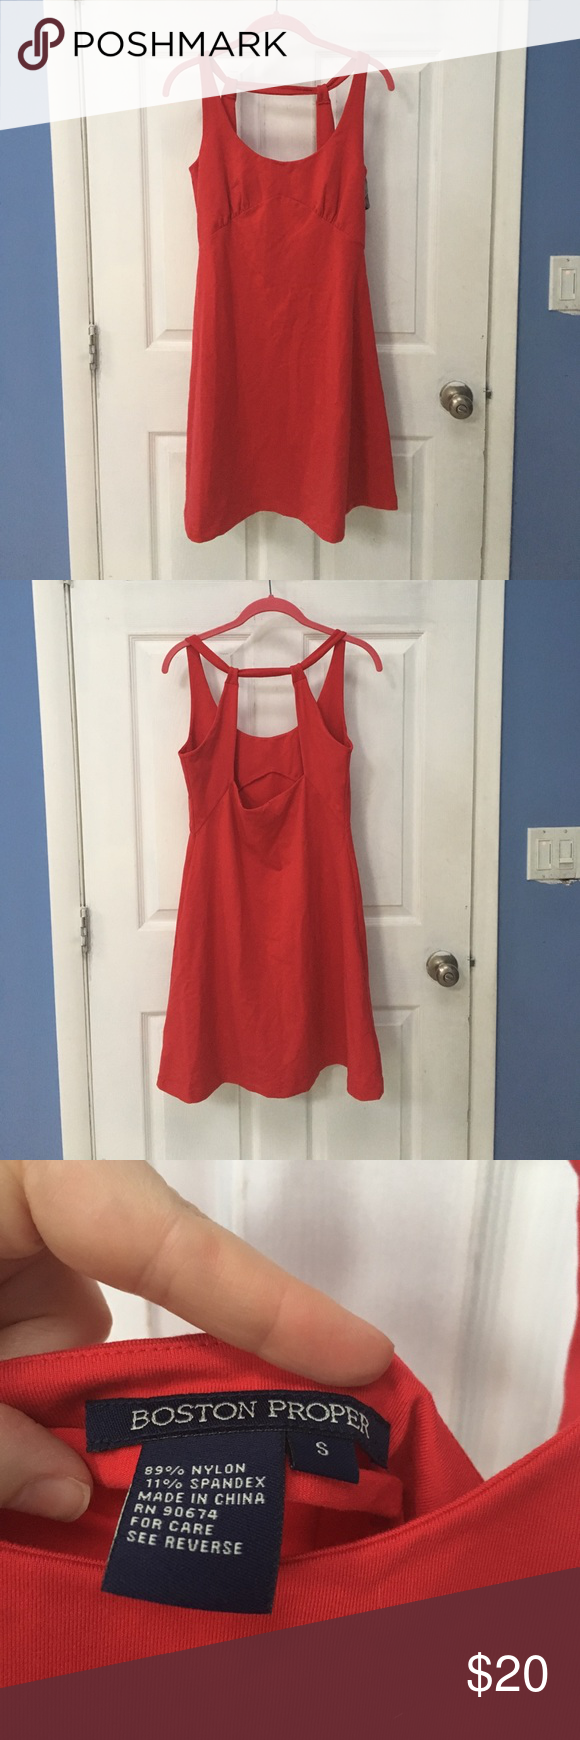 Boston proper red sundress Nice n thick material fit and flare. Lipstick red Boston Proper Dresses